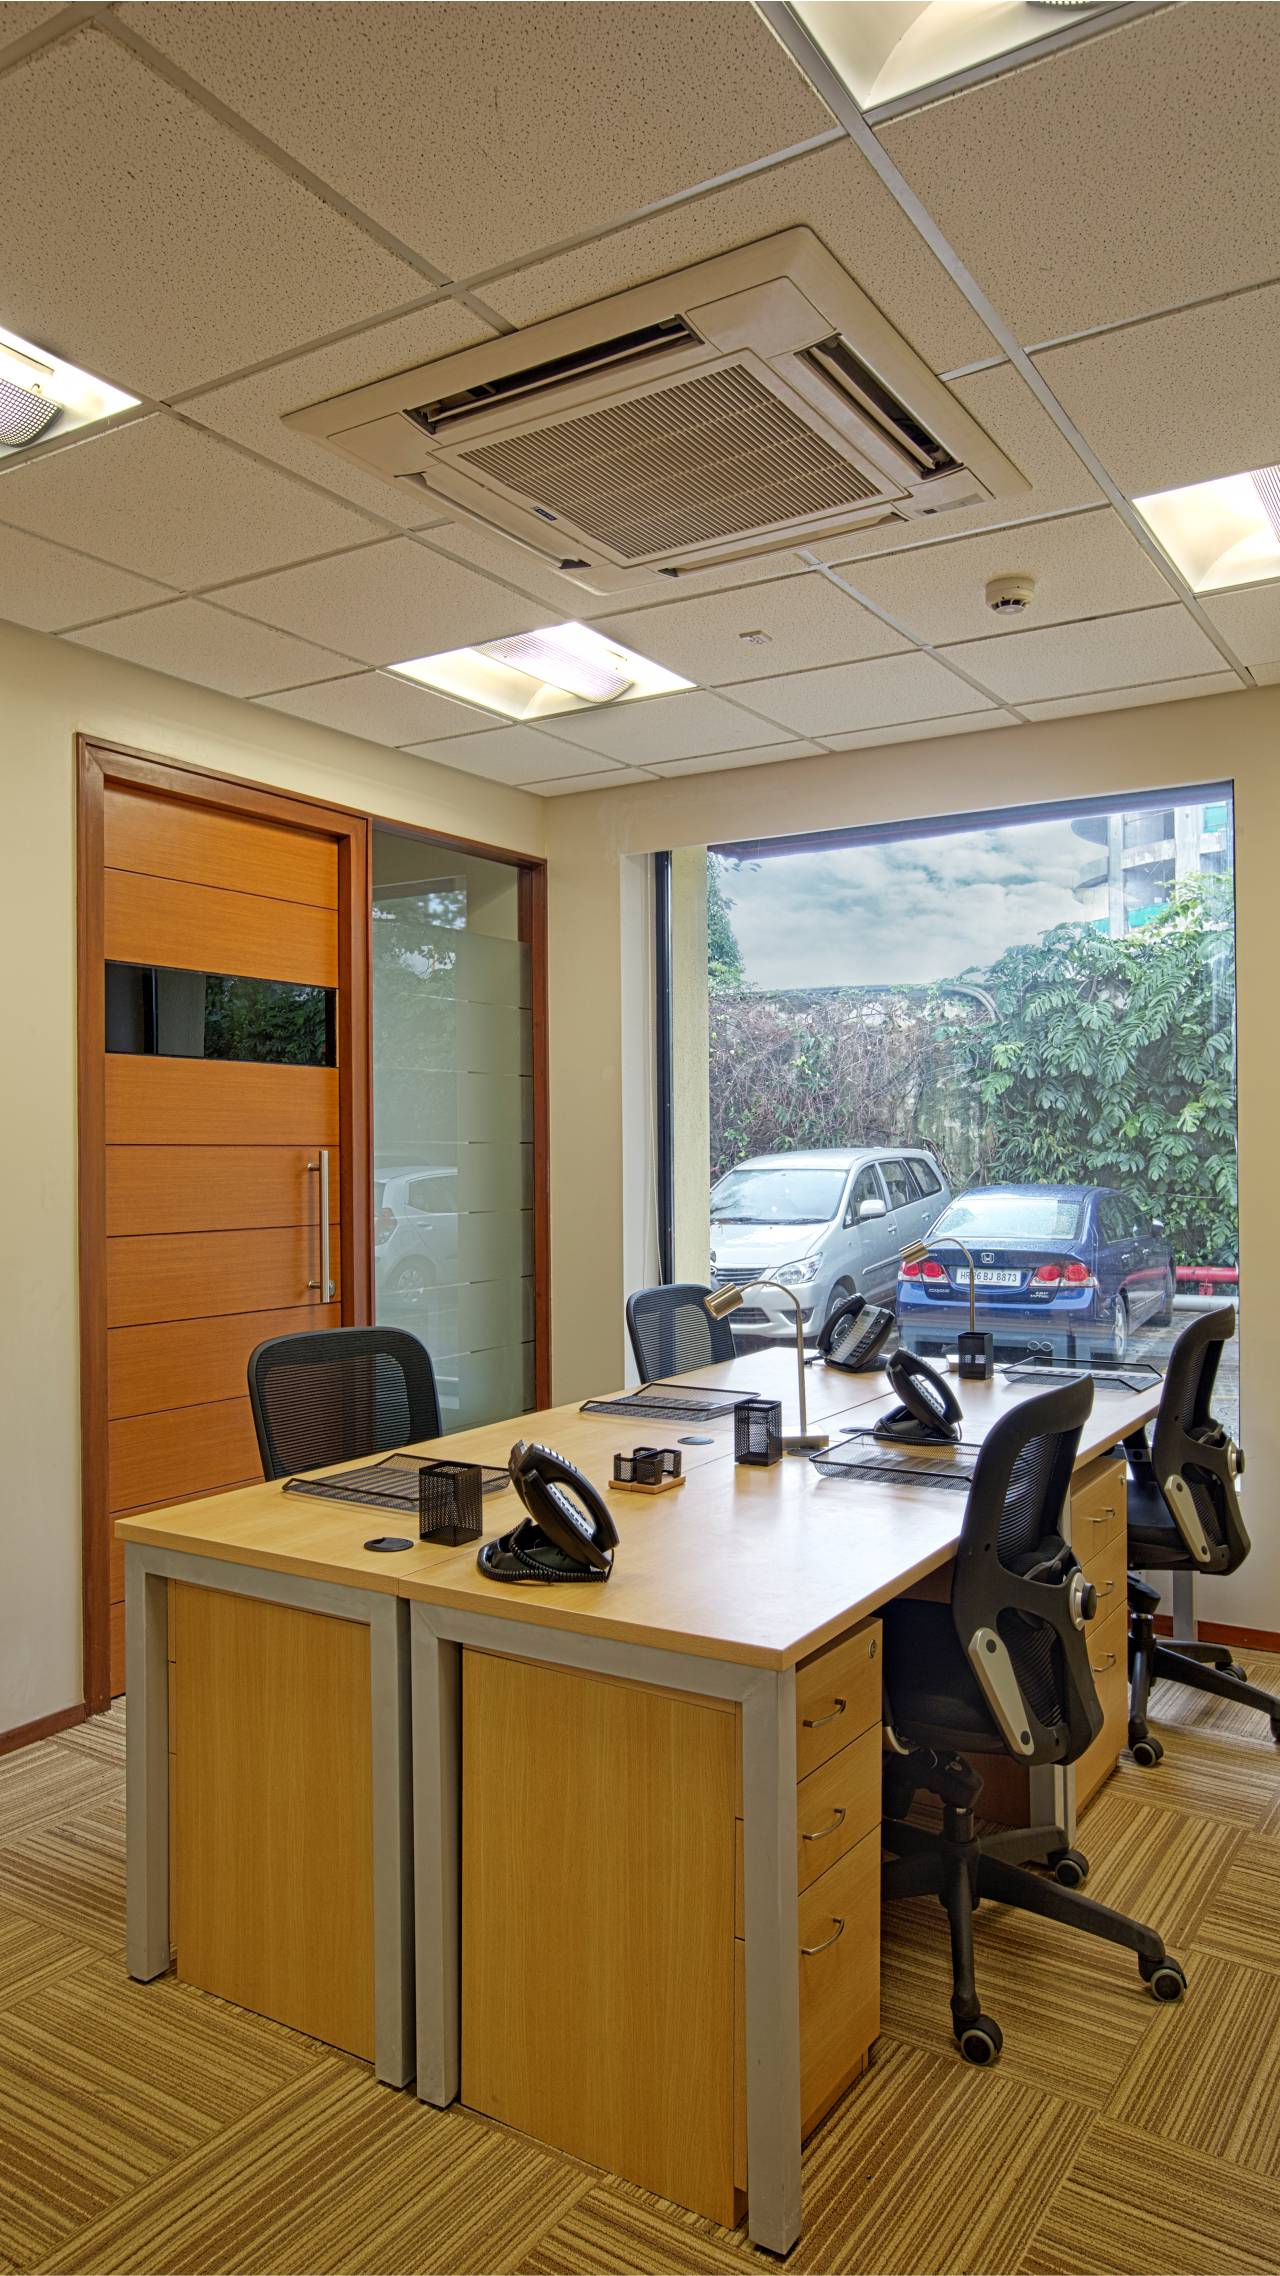 Coworking Space, Shared Office Space in Lower Parel